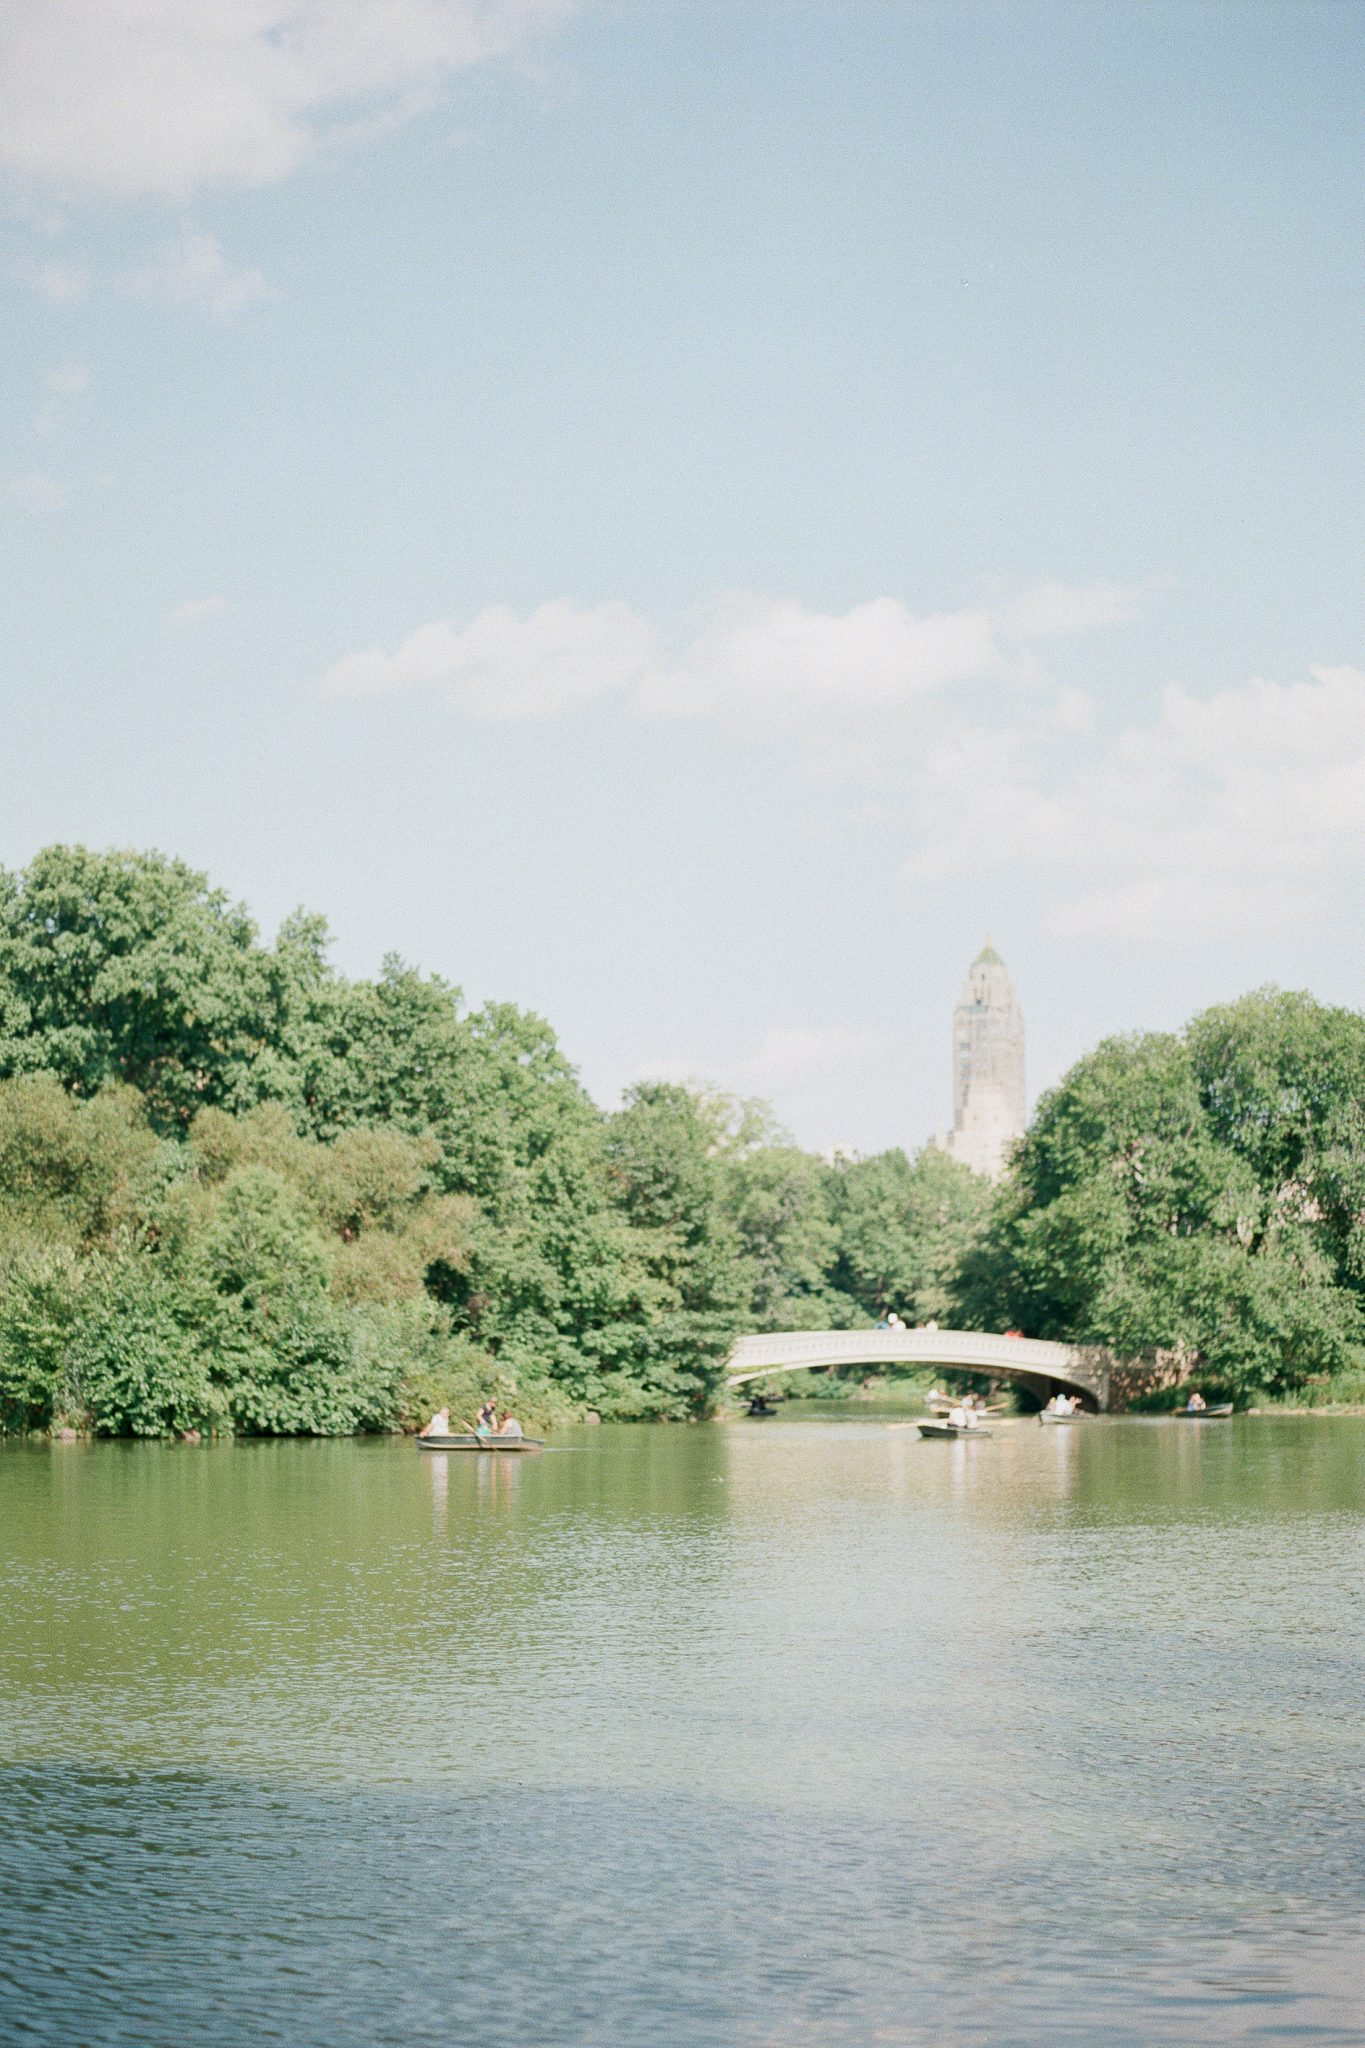 Brklyn-View-Photograpy-NYC-02